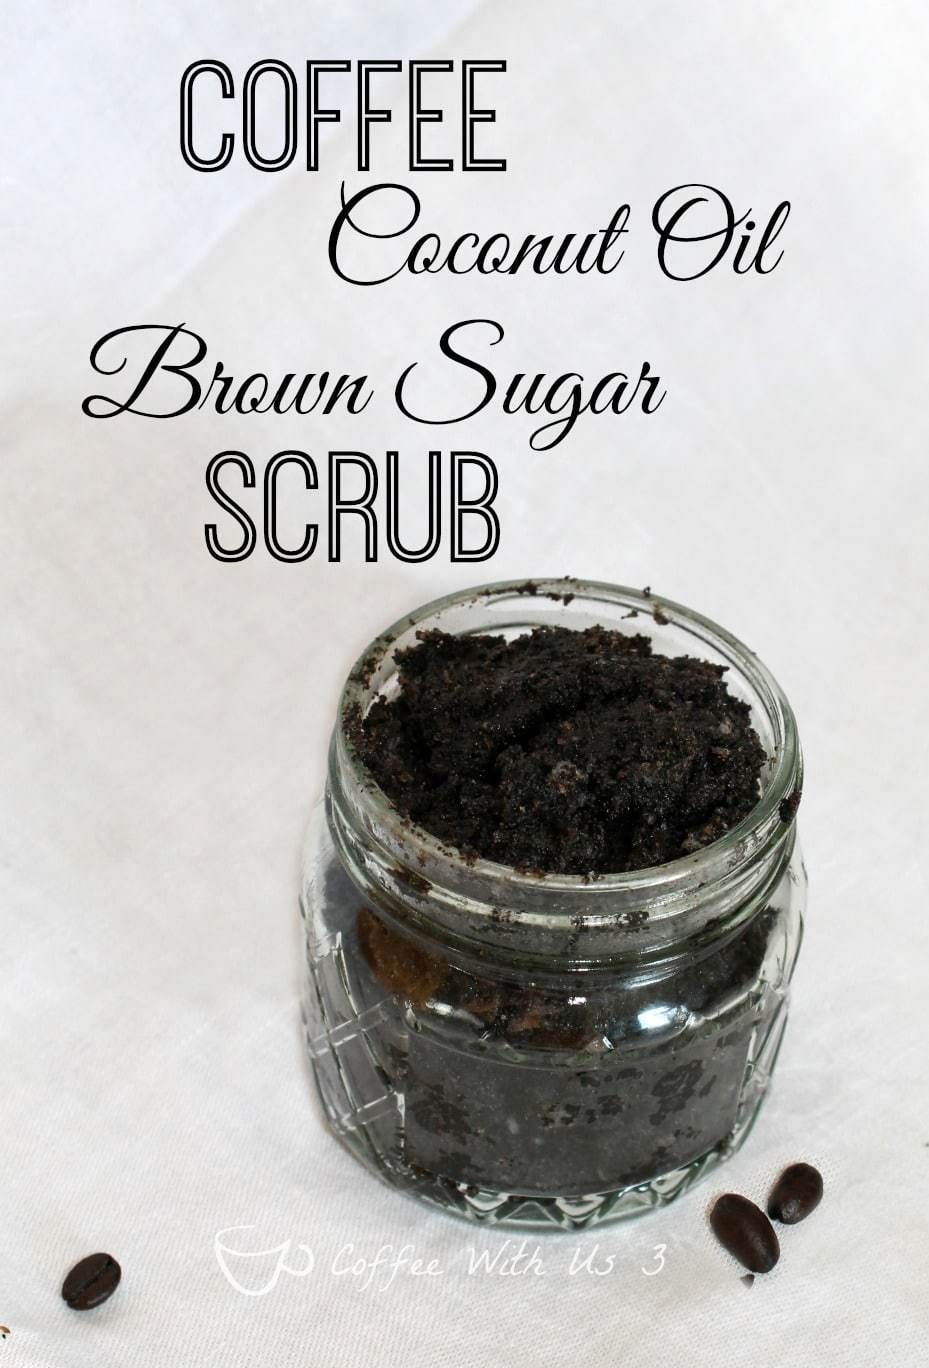 Coffee coconut oil brown sugar scrub is a great way to